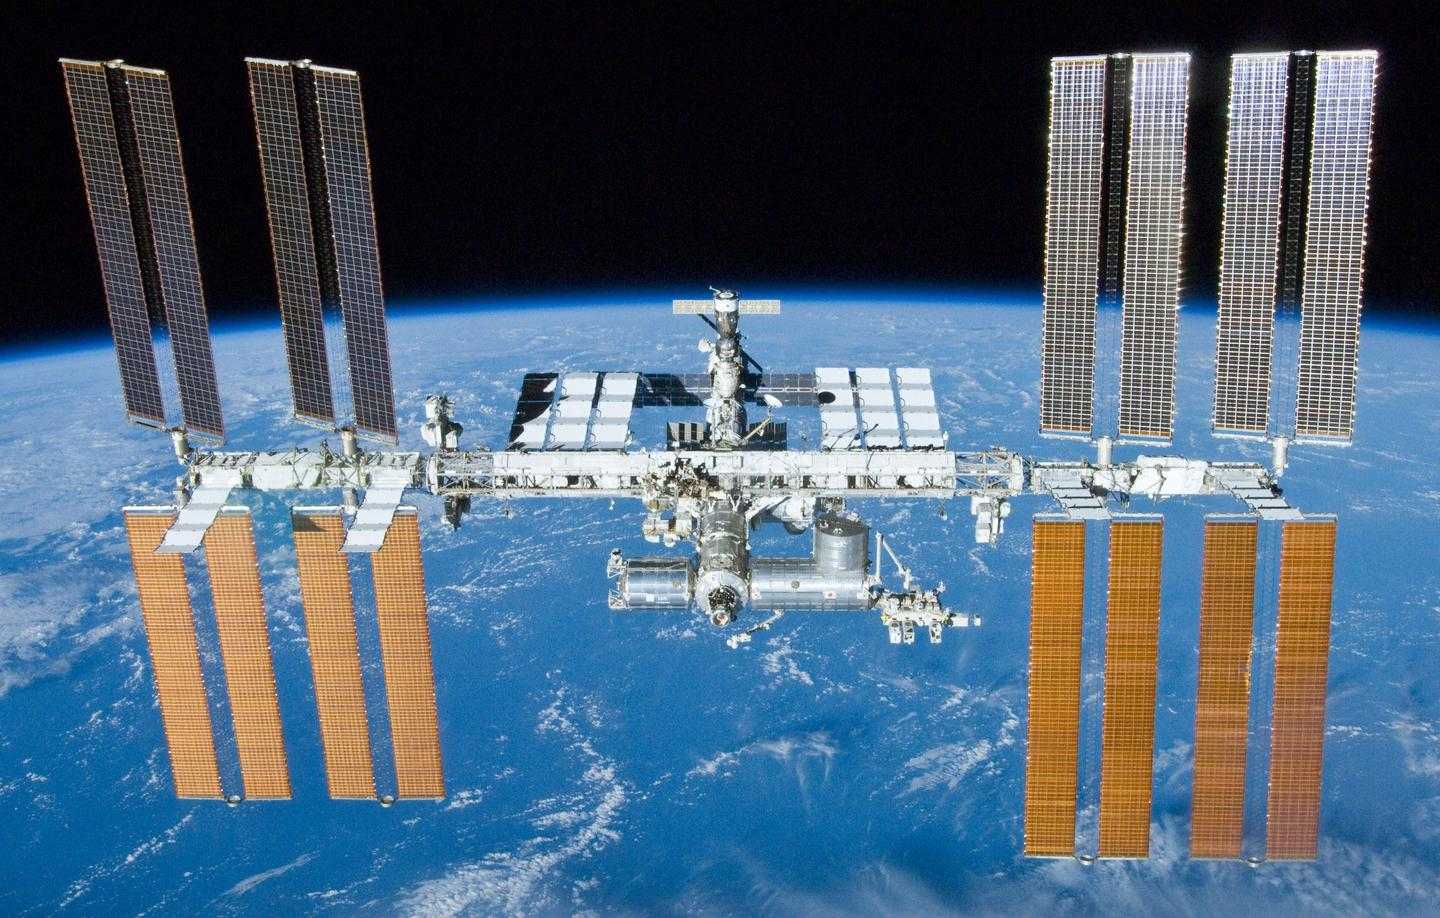 The space whisky experiment has flown on the ISS since 2011 (Image: NASA)